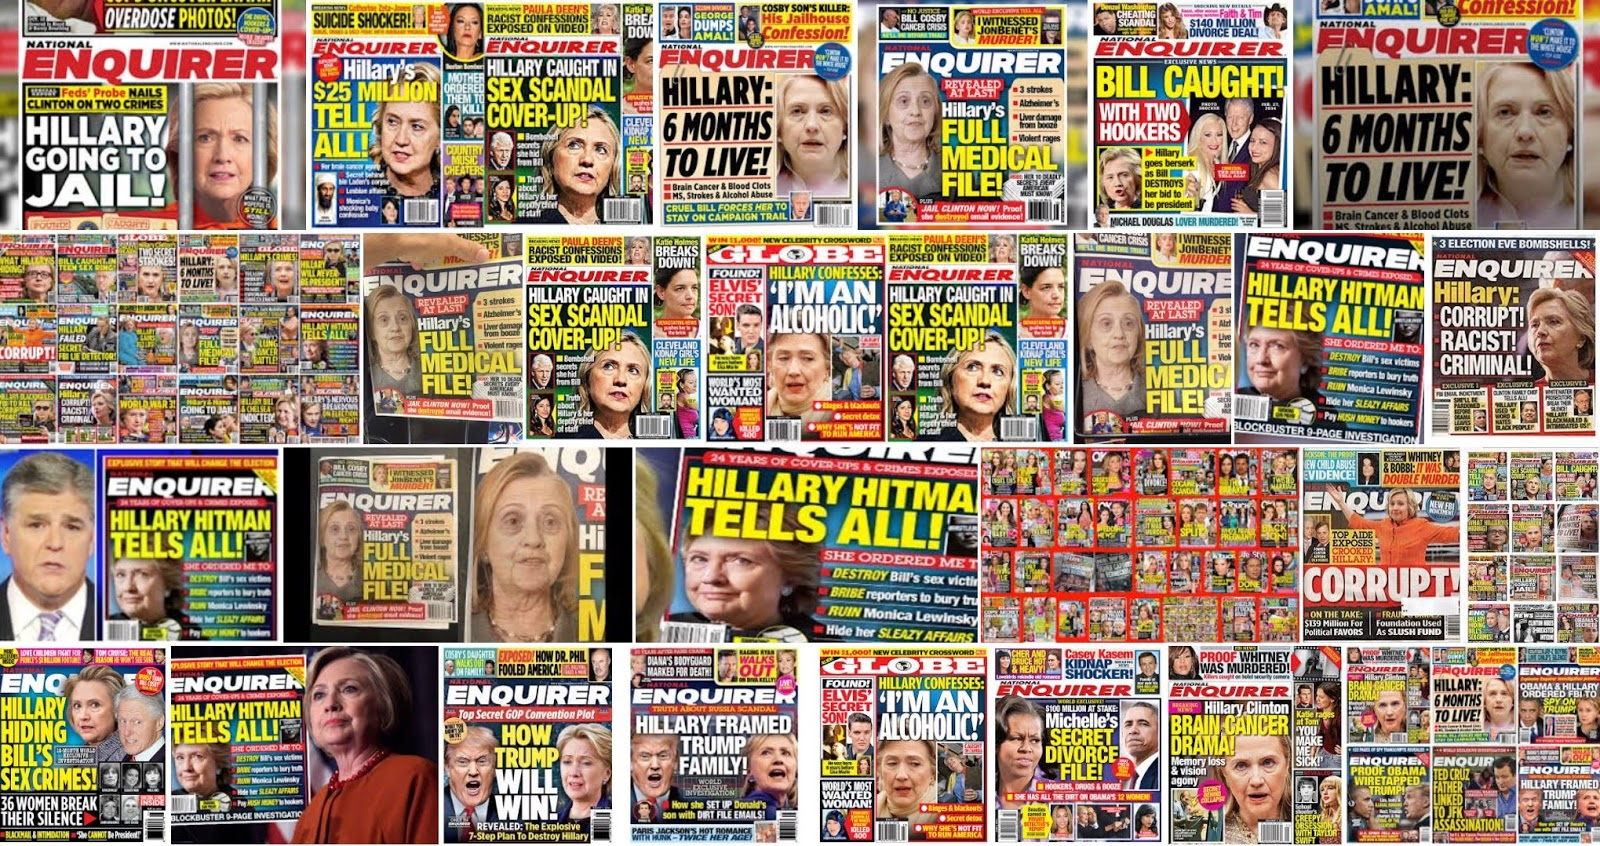 Pro-Trump Political Activism Enquirer Covers